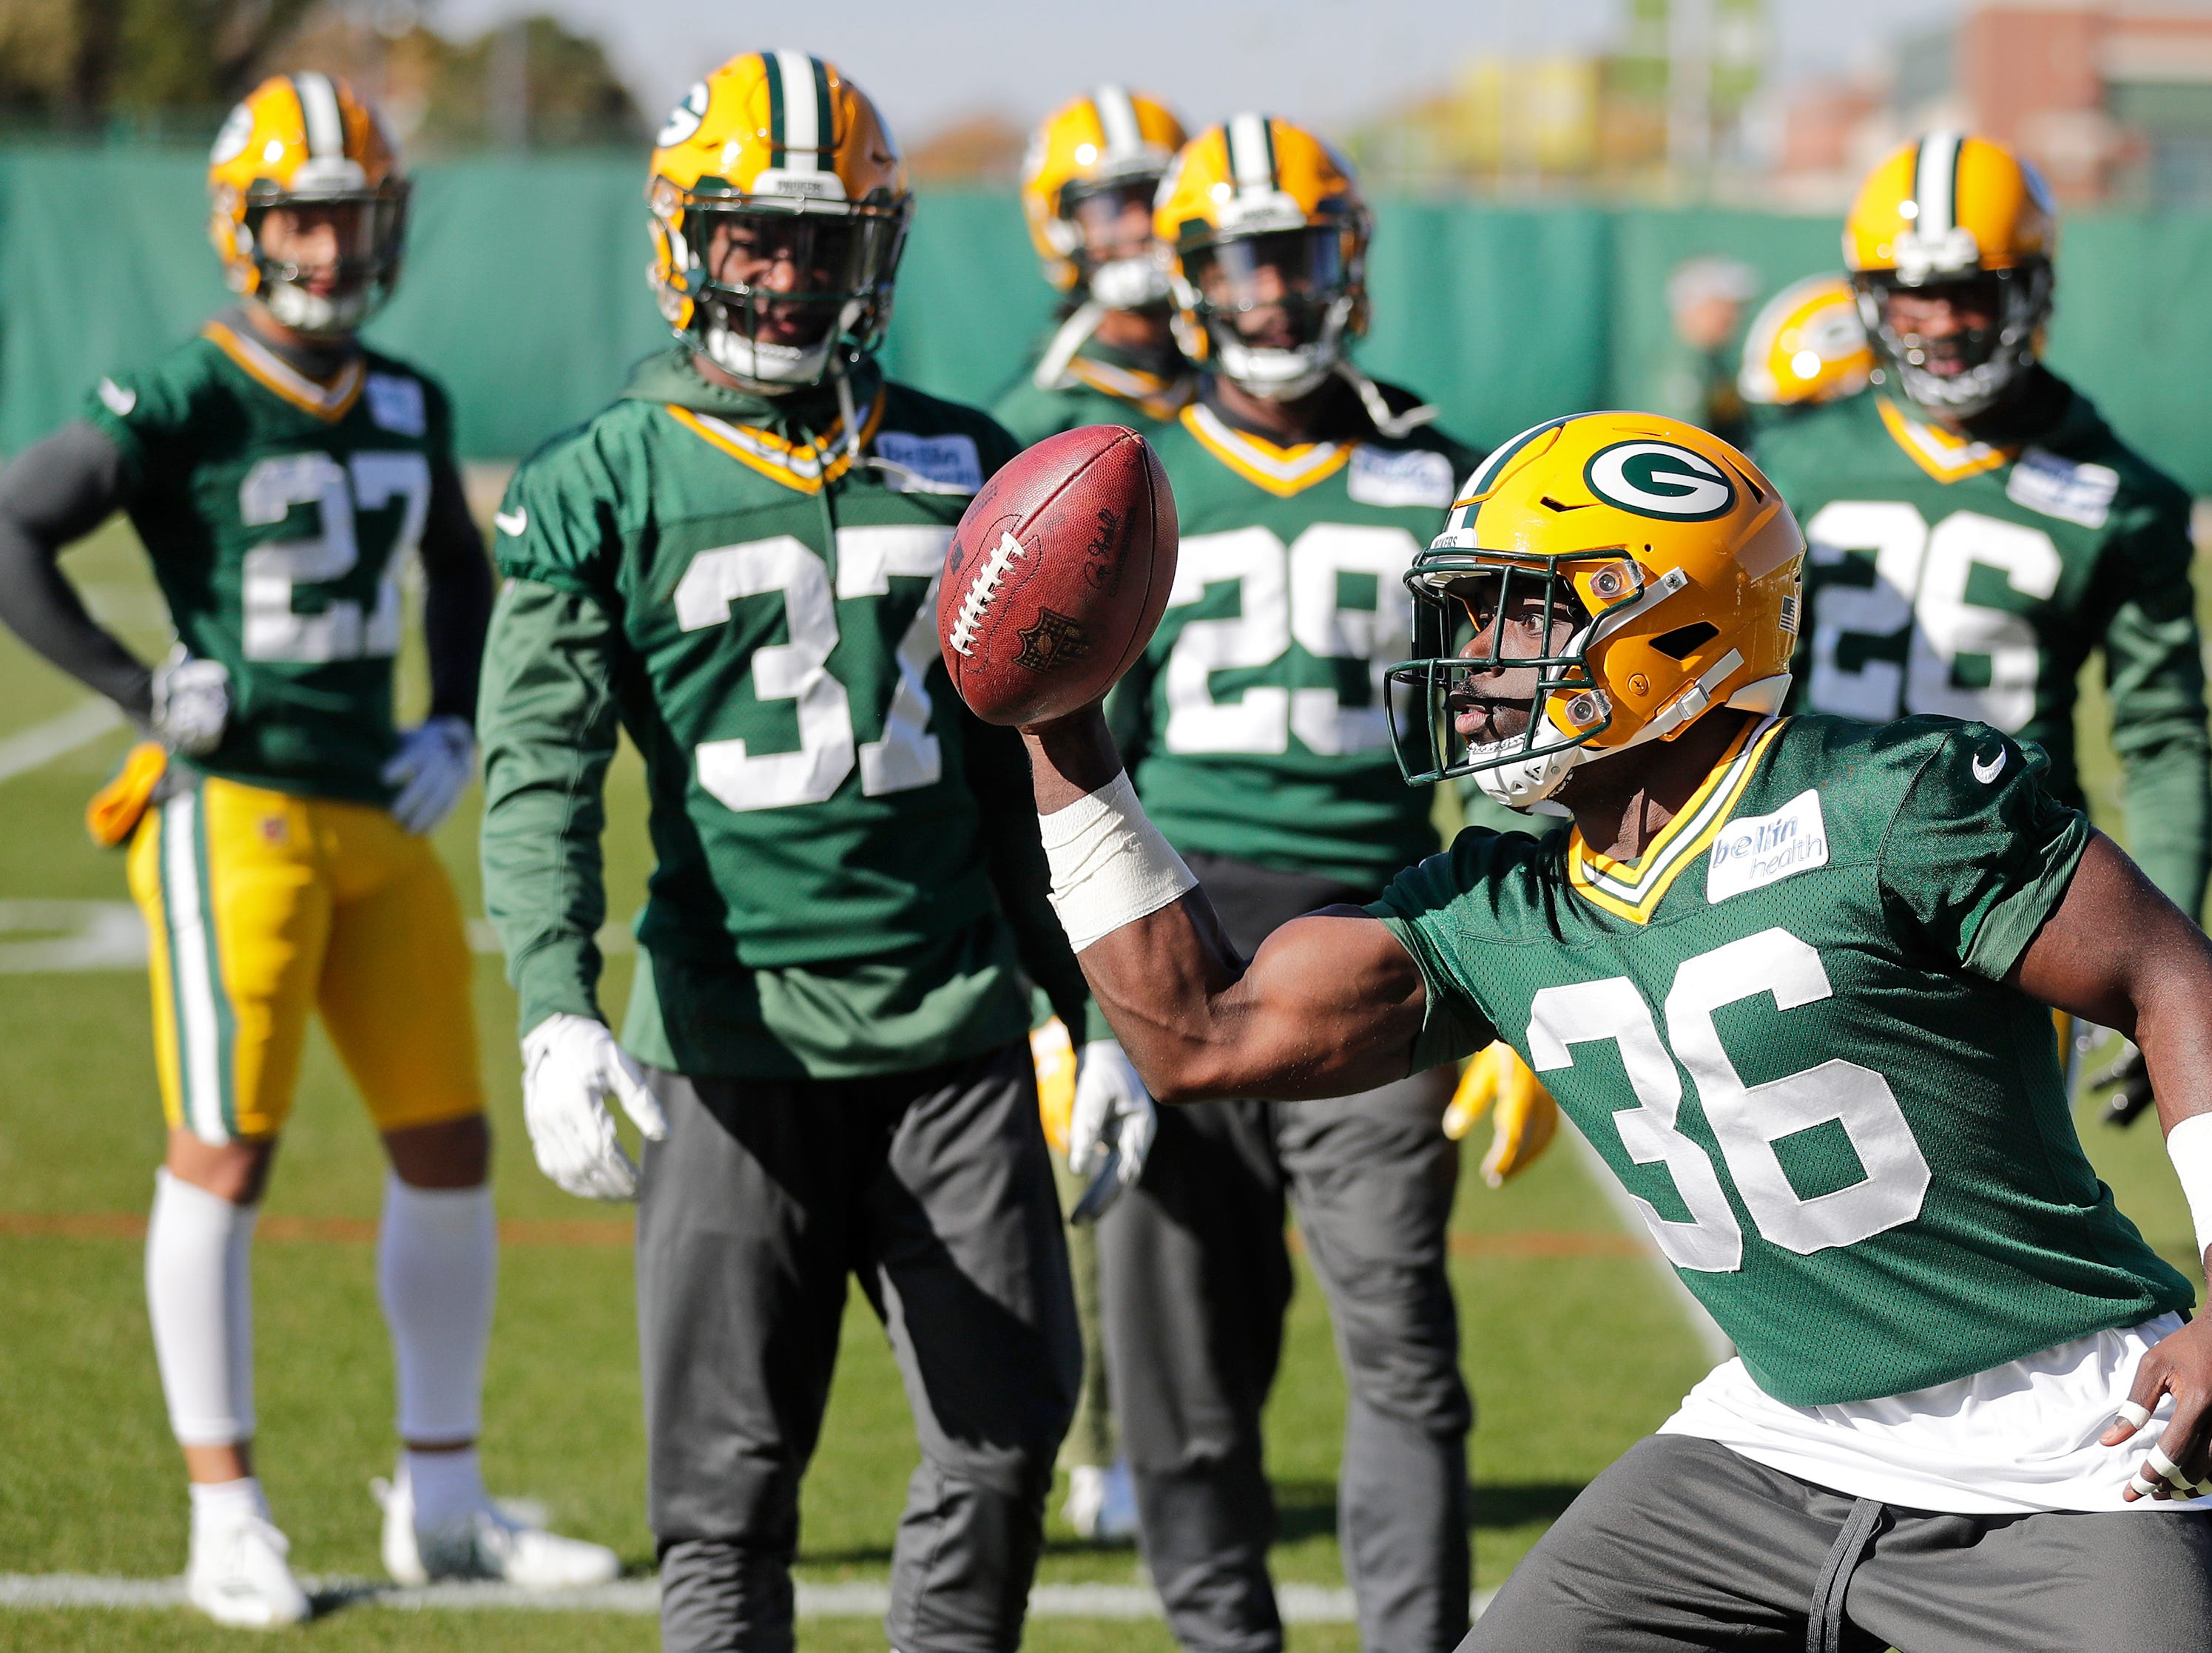 Green Bay Packers defensive back Raven Greene (36) works on one-handed catches during practice at Ray Nitschke Field on Wednesday, October 31, 2018 in Ashwaubenon, Wis.